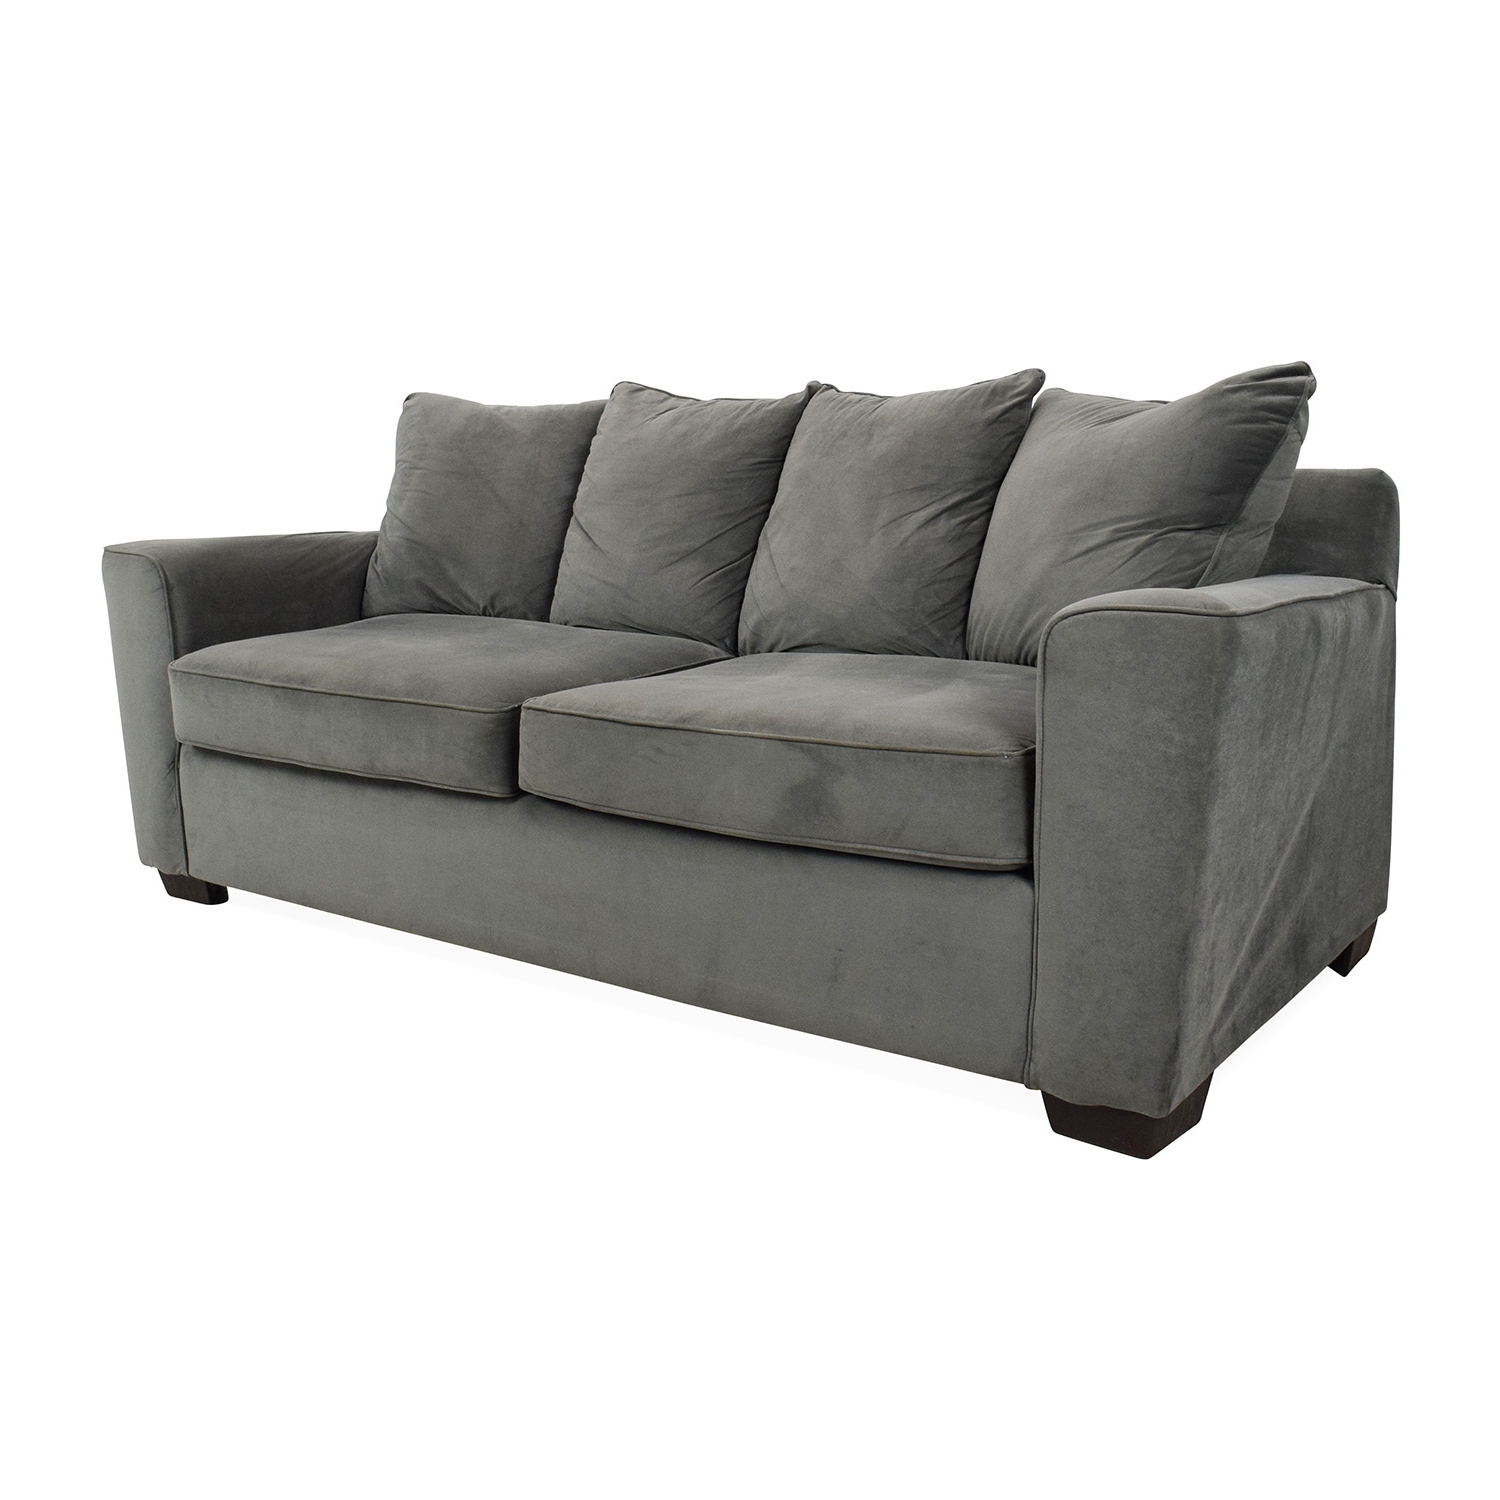 [%53% Off – Jennifer Convertibles Jennifer Convertibles Grey Couch Within Well Liked Jennifer Sofas|Jennifer Sofas Regarding Fashionable 53% Off – Jennifer Convertibles Jennifer Convertibles Grey Couch|Current Jennifer Sofas Regarding 53% Off – Jennifer Convertibles Jennifer Convertibles Grey Couch|Most Up To Date 53% Off – Jennifer Convertibles Jennifer Convertibles Grey Couch With Jennifer Sofas%] (View 3 of 15)